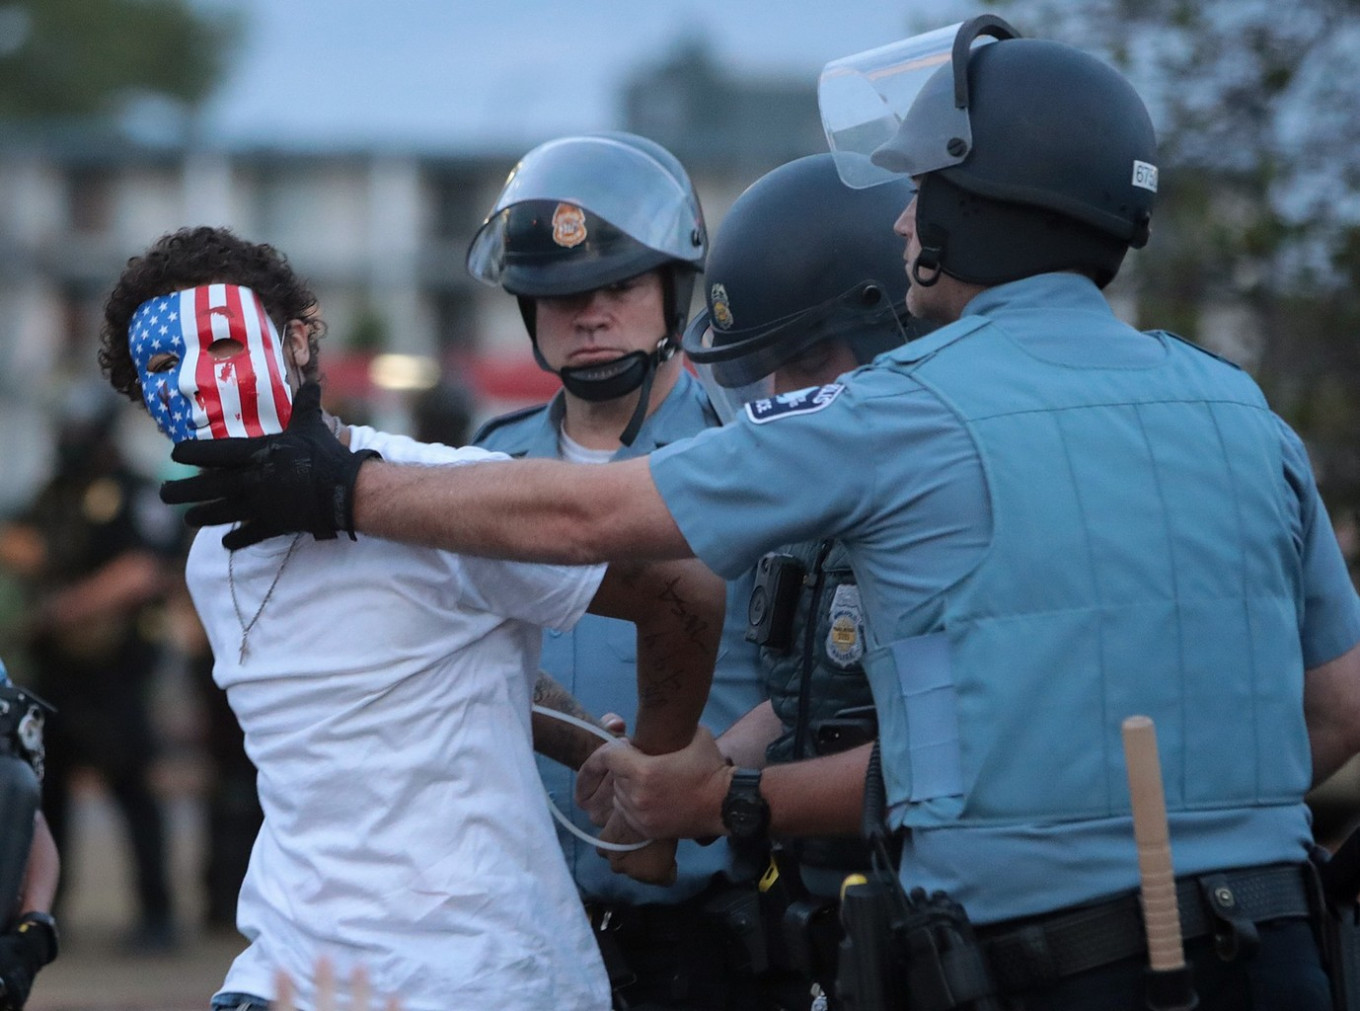 US police in hot seat after years of near impunity